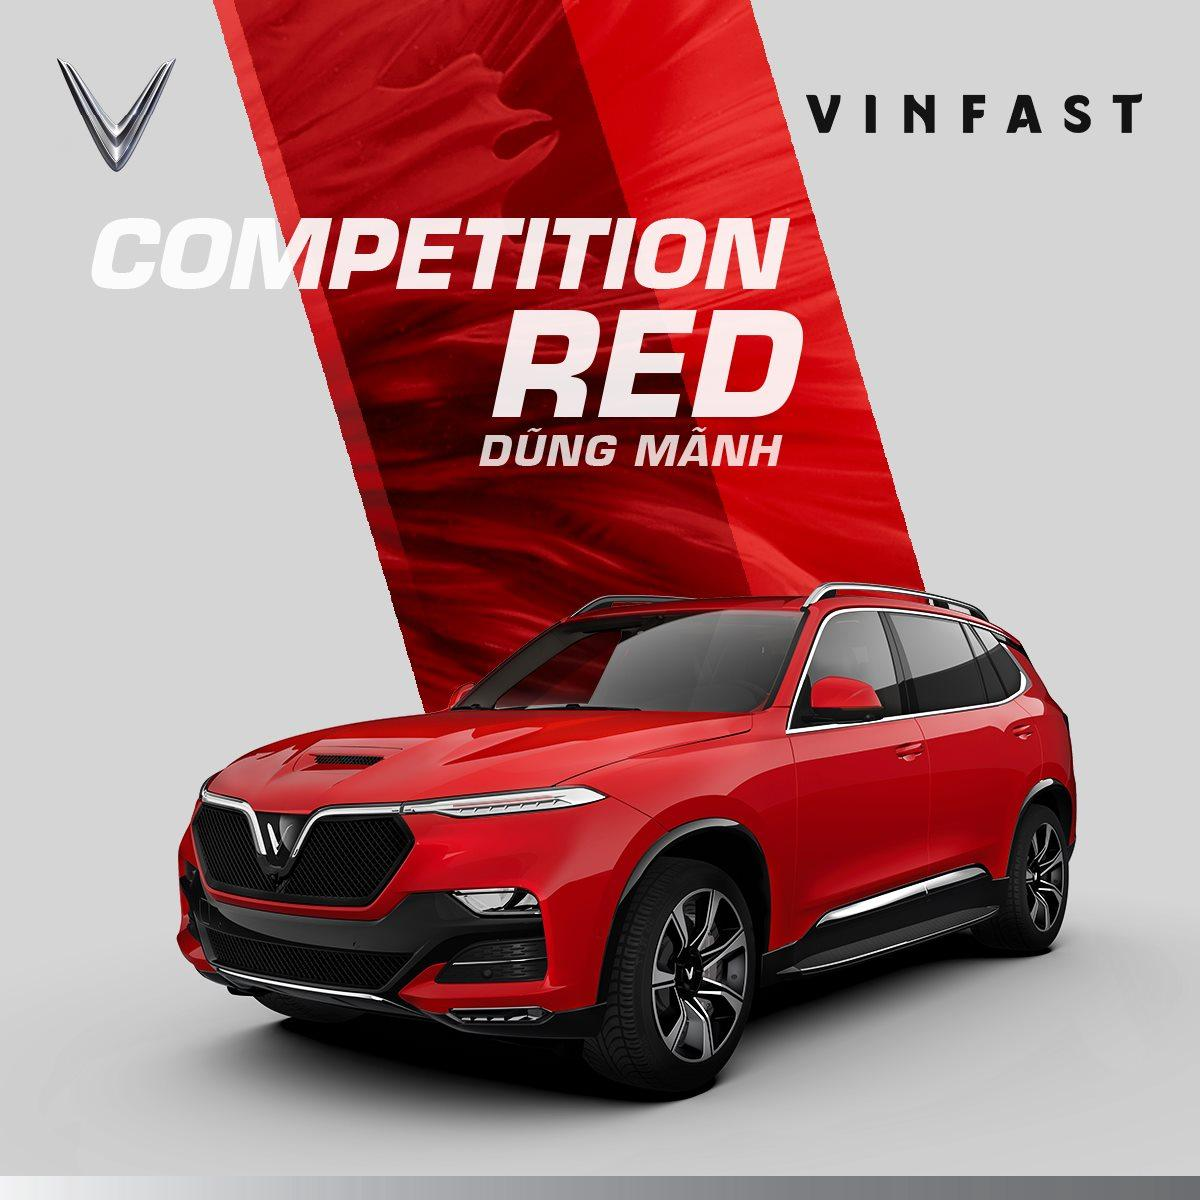 vinfast-president-competition-red